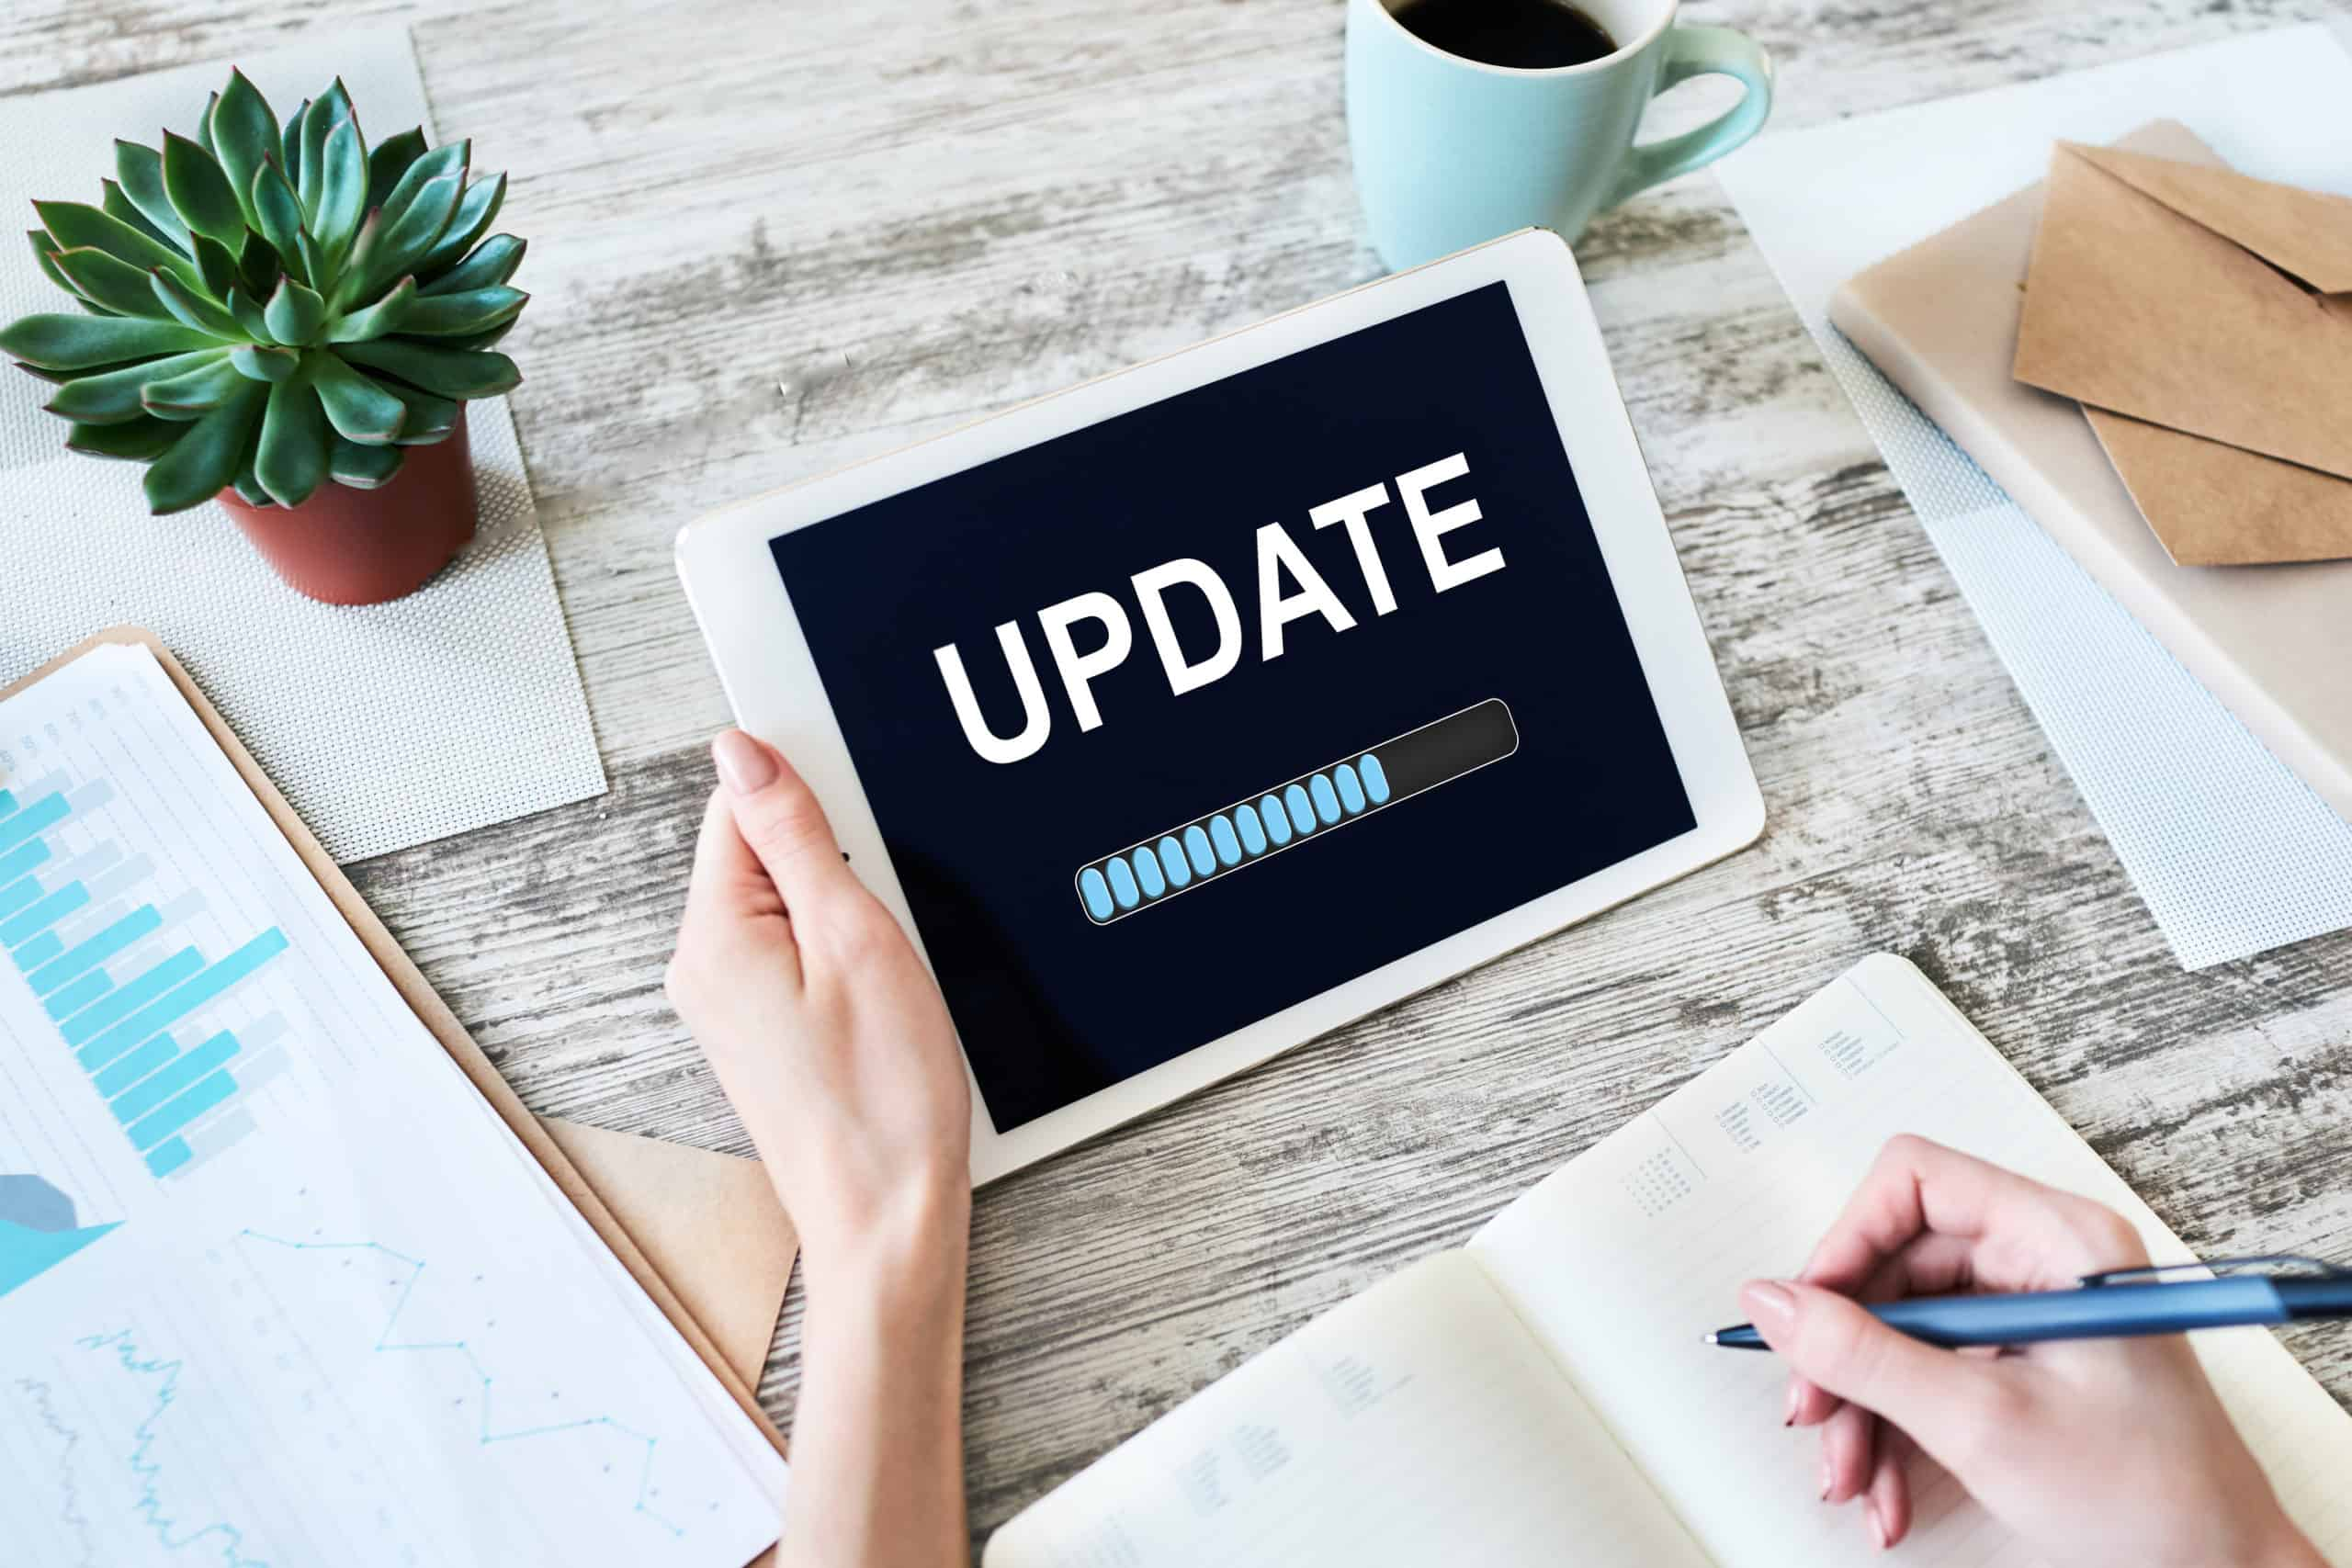 Are All Your Software & Hardware Updated? Here's Why It's Critical That They Are